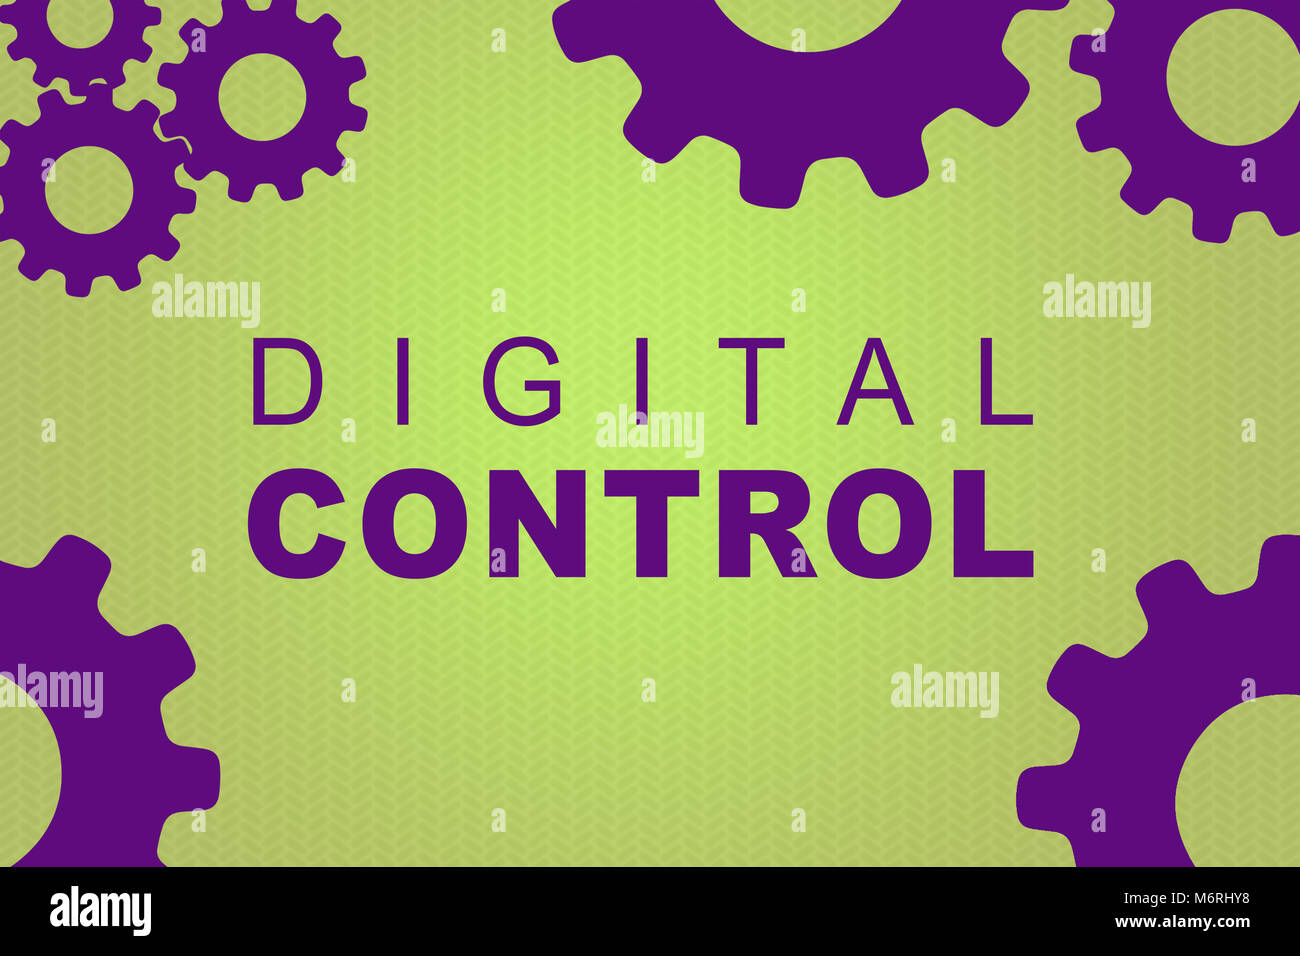 DIGITAL CONTROL sign concept illustration with purple gear wheel figures on pale green background Stock Photo